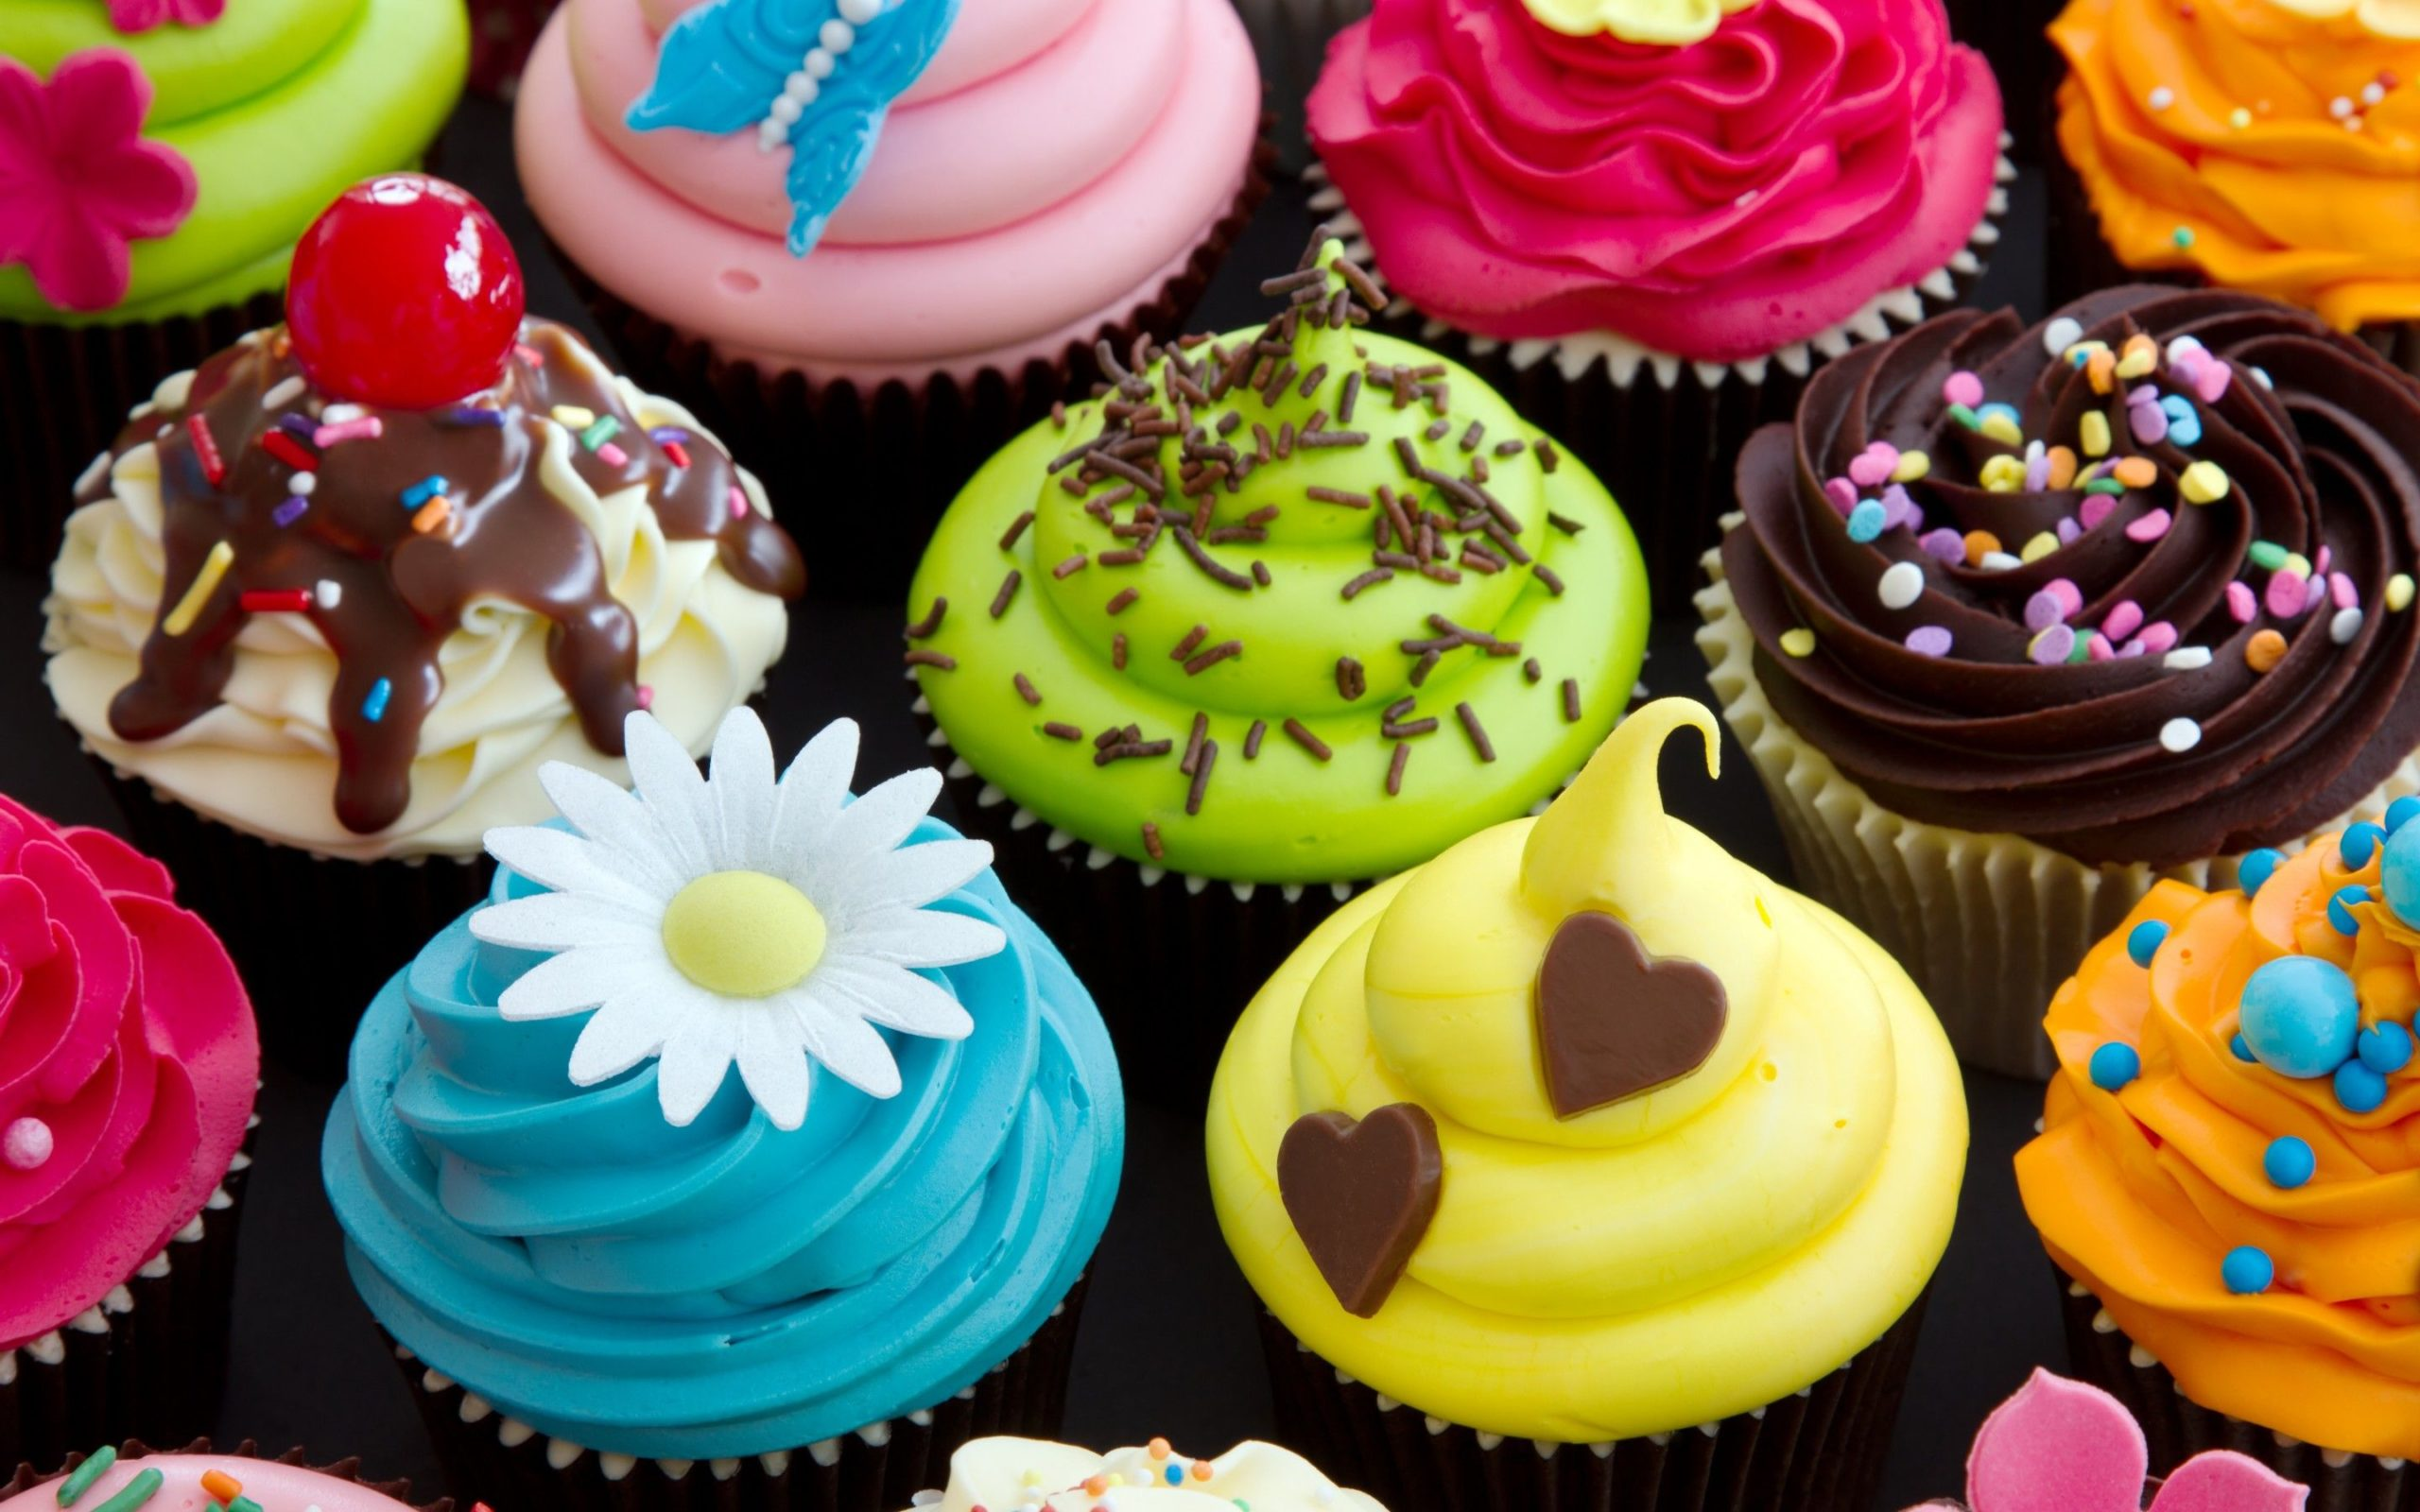 cupcake background images